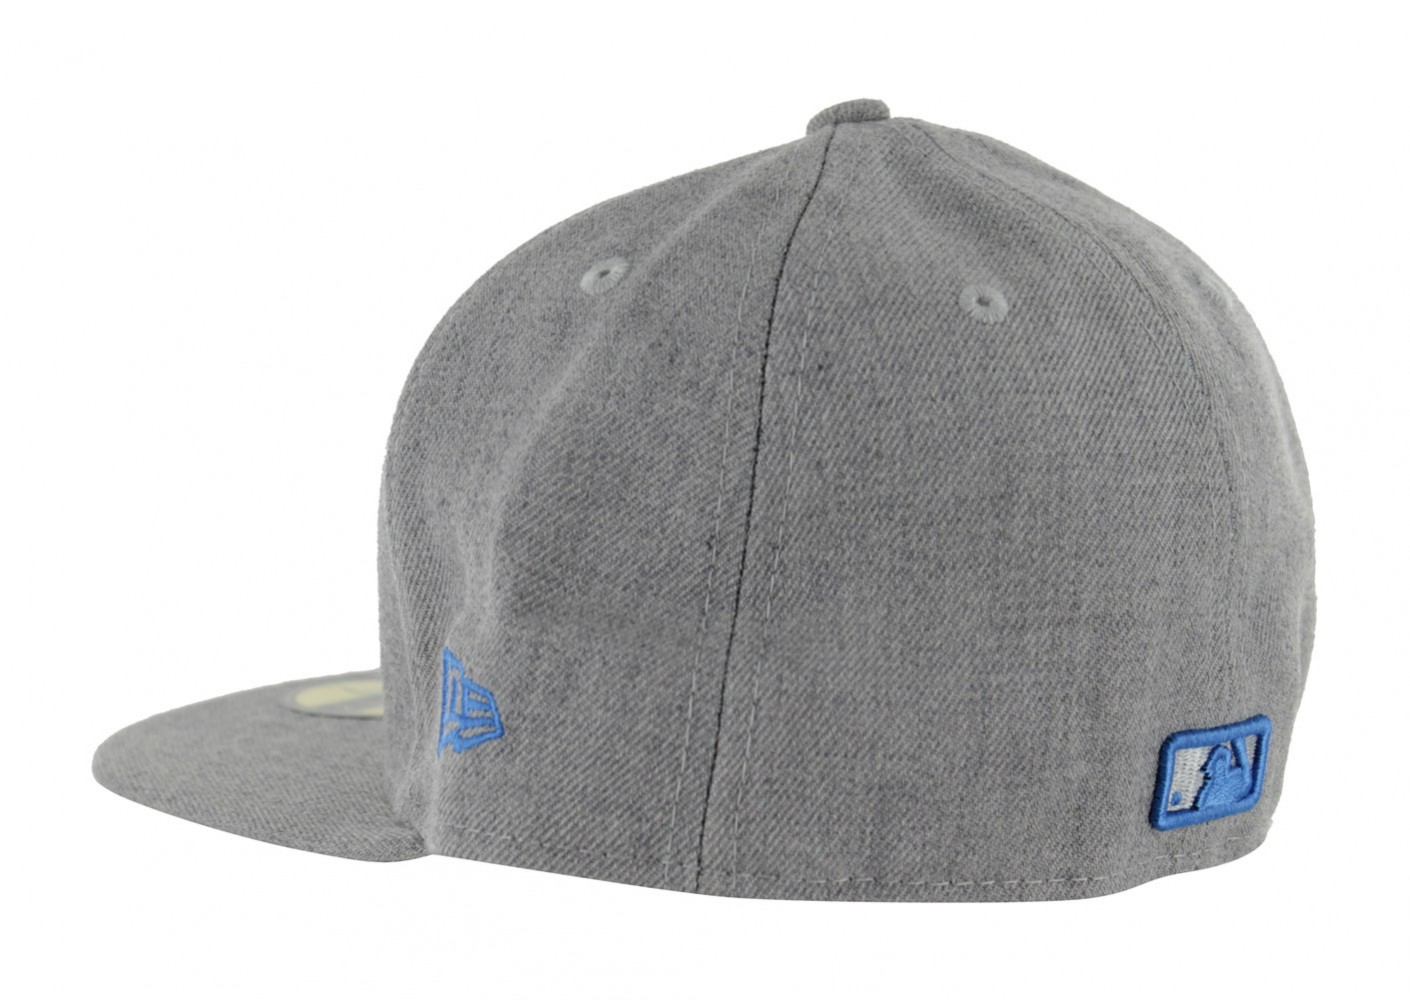 New Era Casquette Fitted Contrast Grise Accessoires Chausport